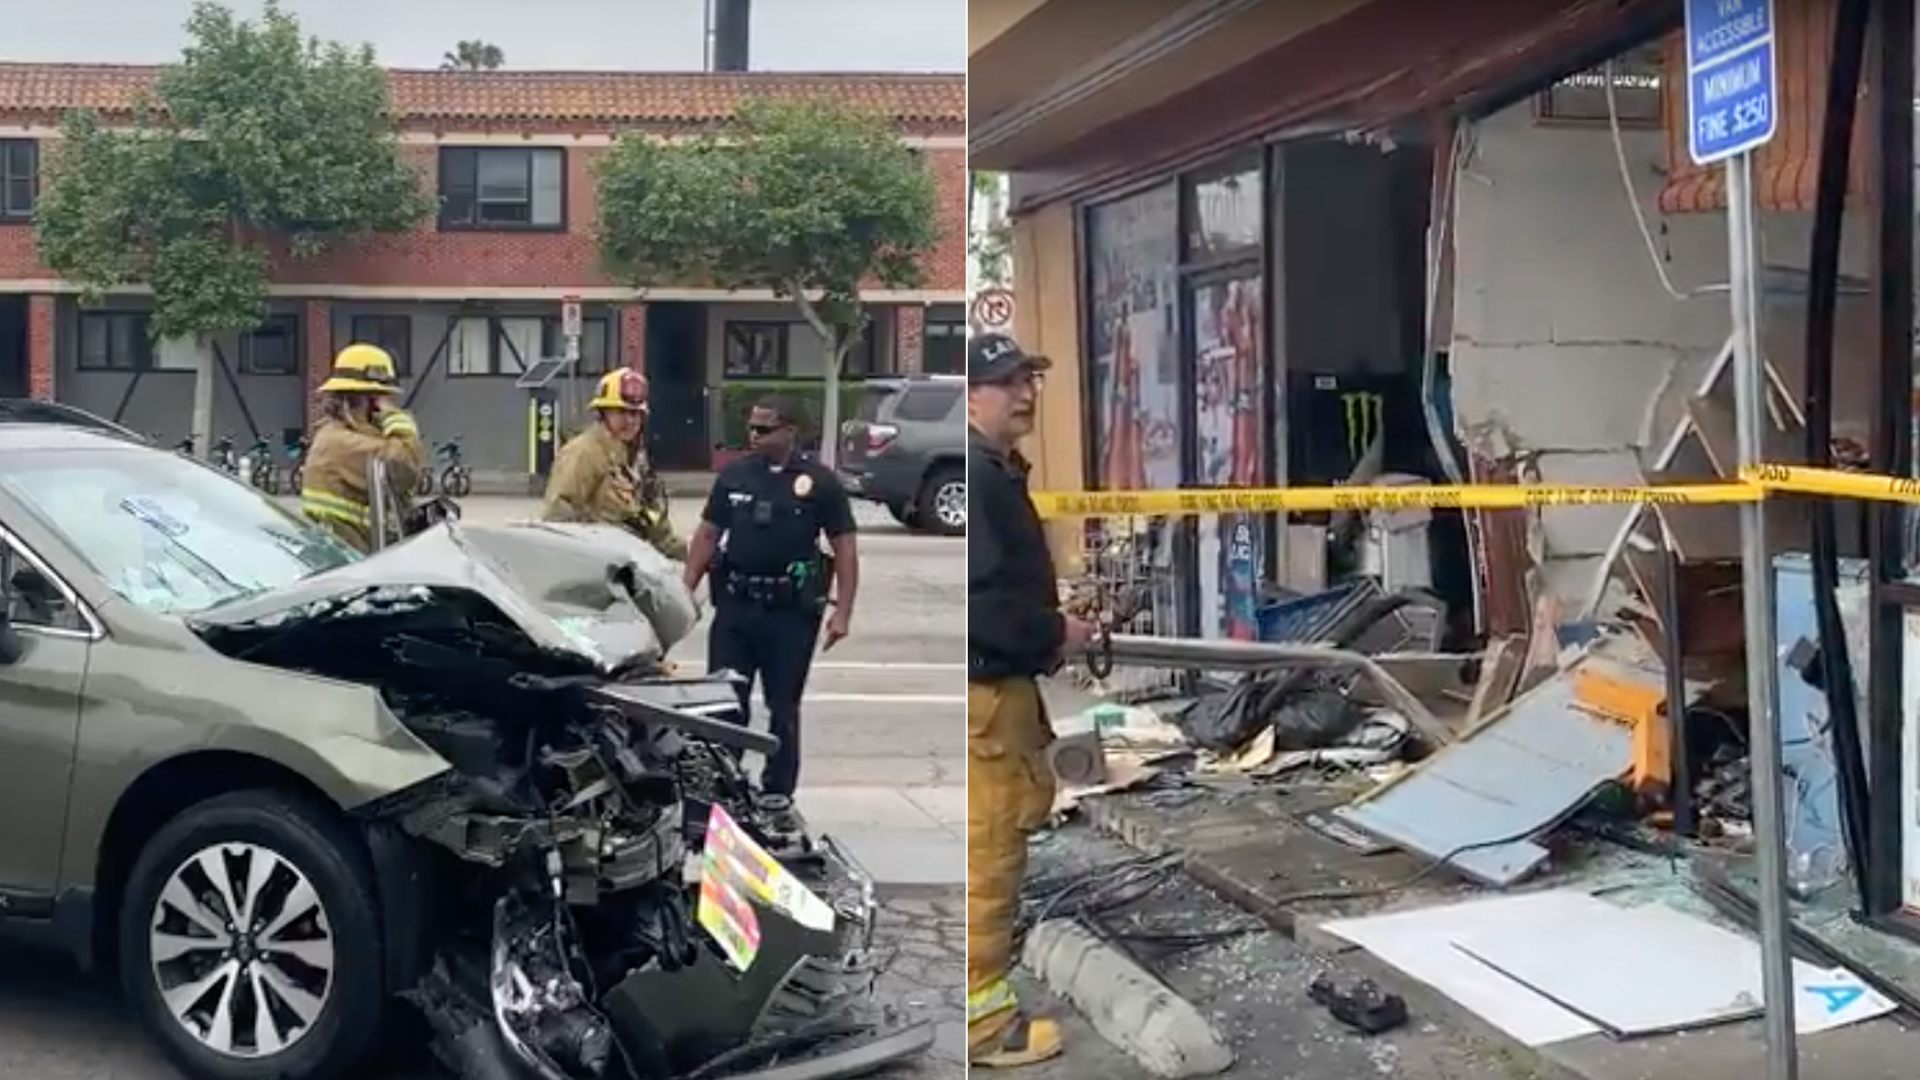 These side-by-side images show the wreckage left behind after an SUV slammed into a store in Venice on April 28, 2019. (Credit: Casey MacLean)